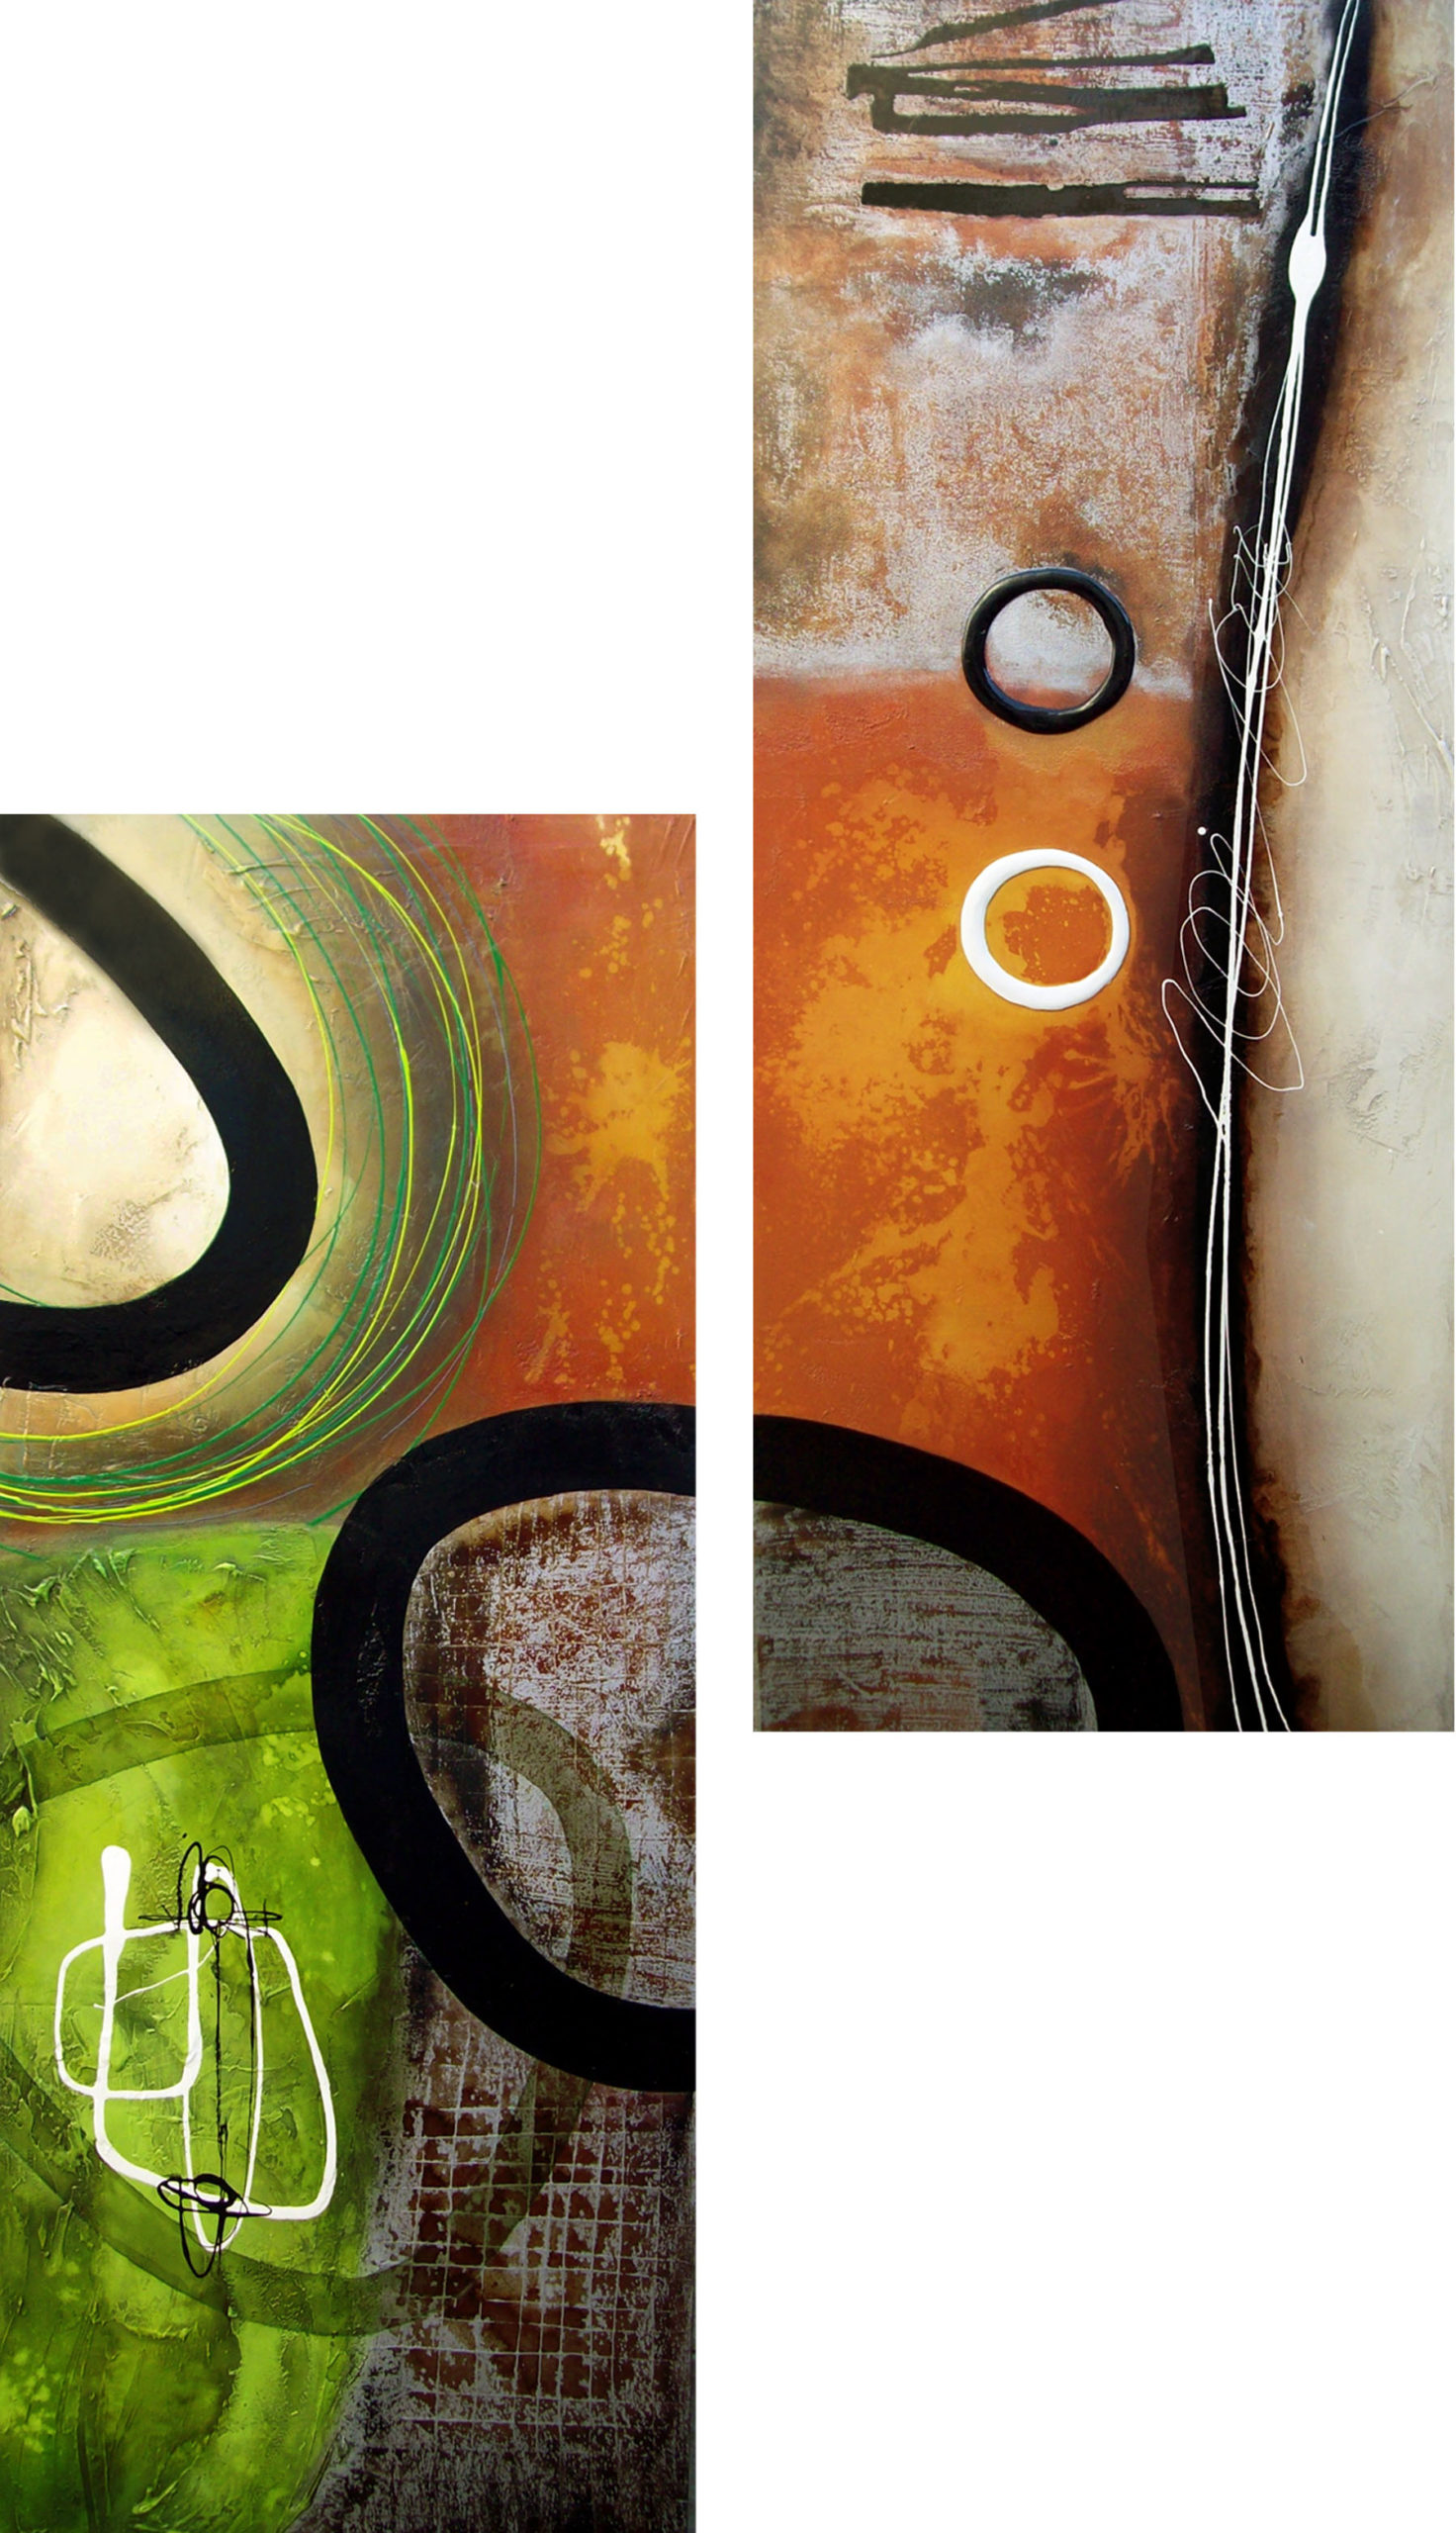 Vicky Sanders Abstract - Oranges and Limes